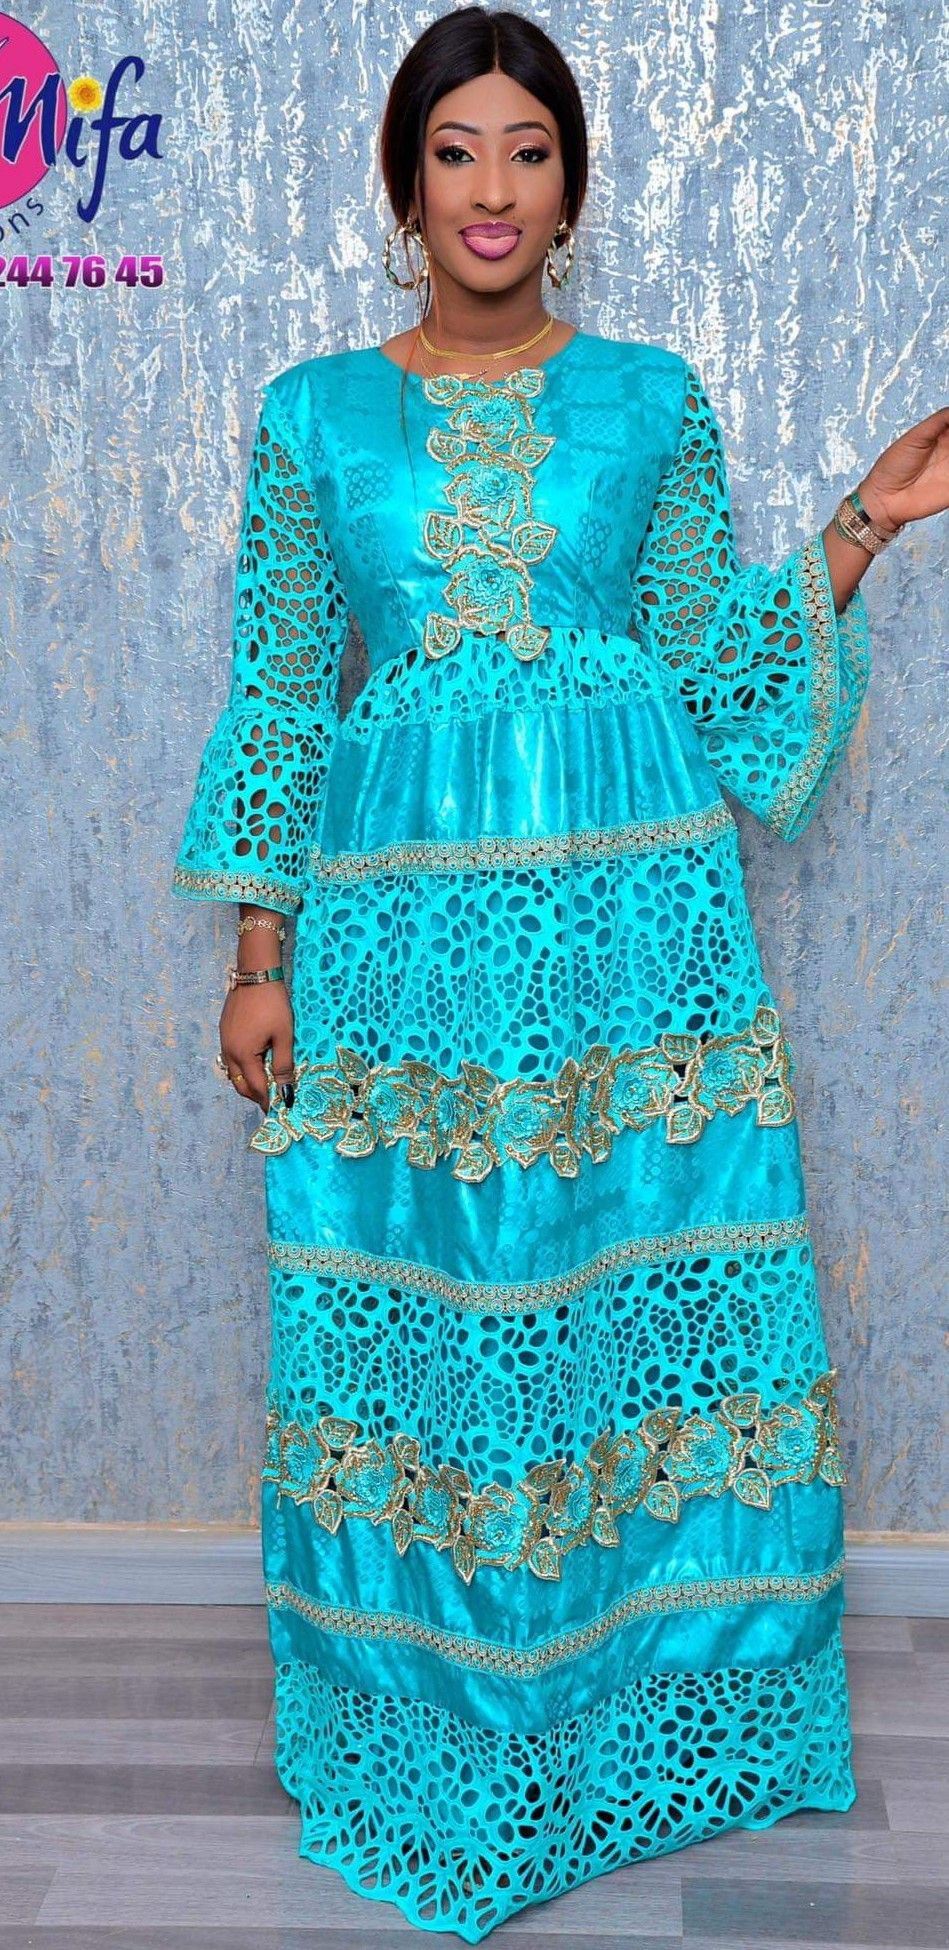 Pin By Merry Loum On Senegalaise African Clothing African Attire African Lace Styles